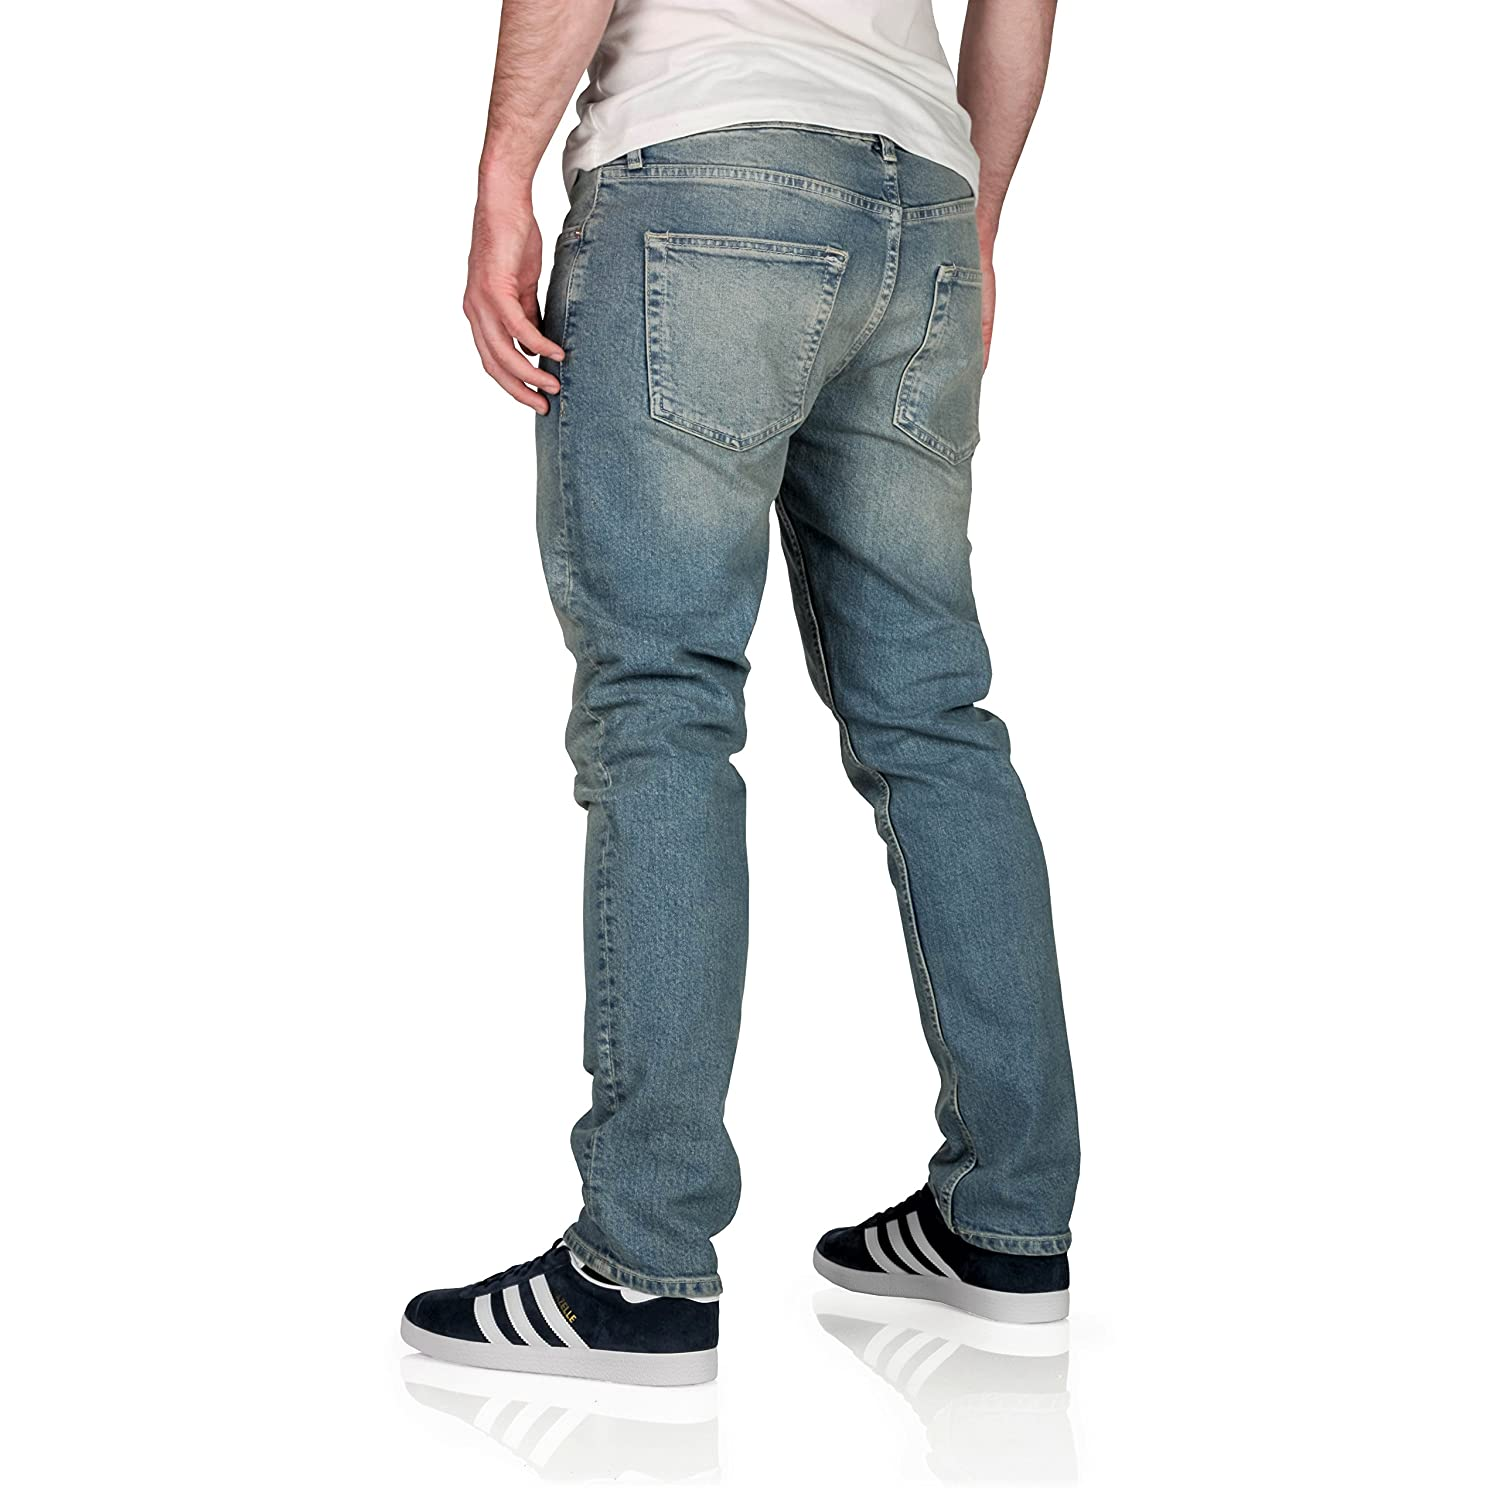 99cf13a5 Topman Mens Stretch Slim Fit Jeans: Amazon.co.uk: Clothing